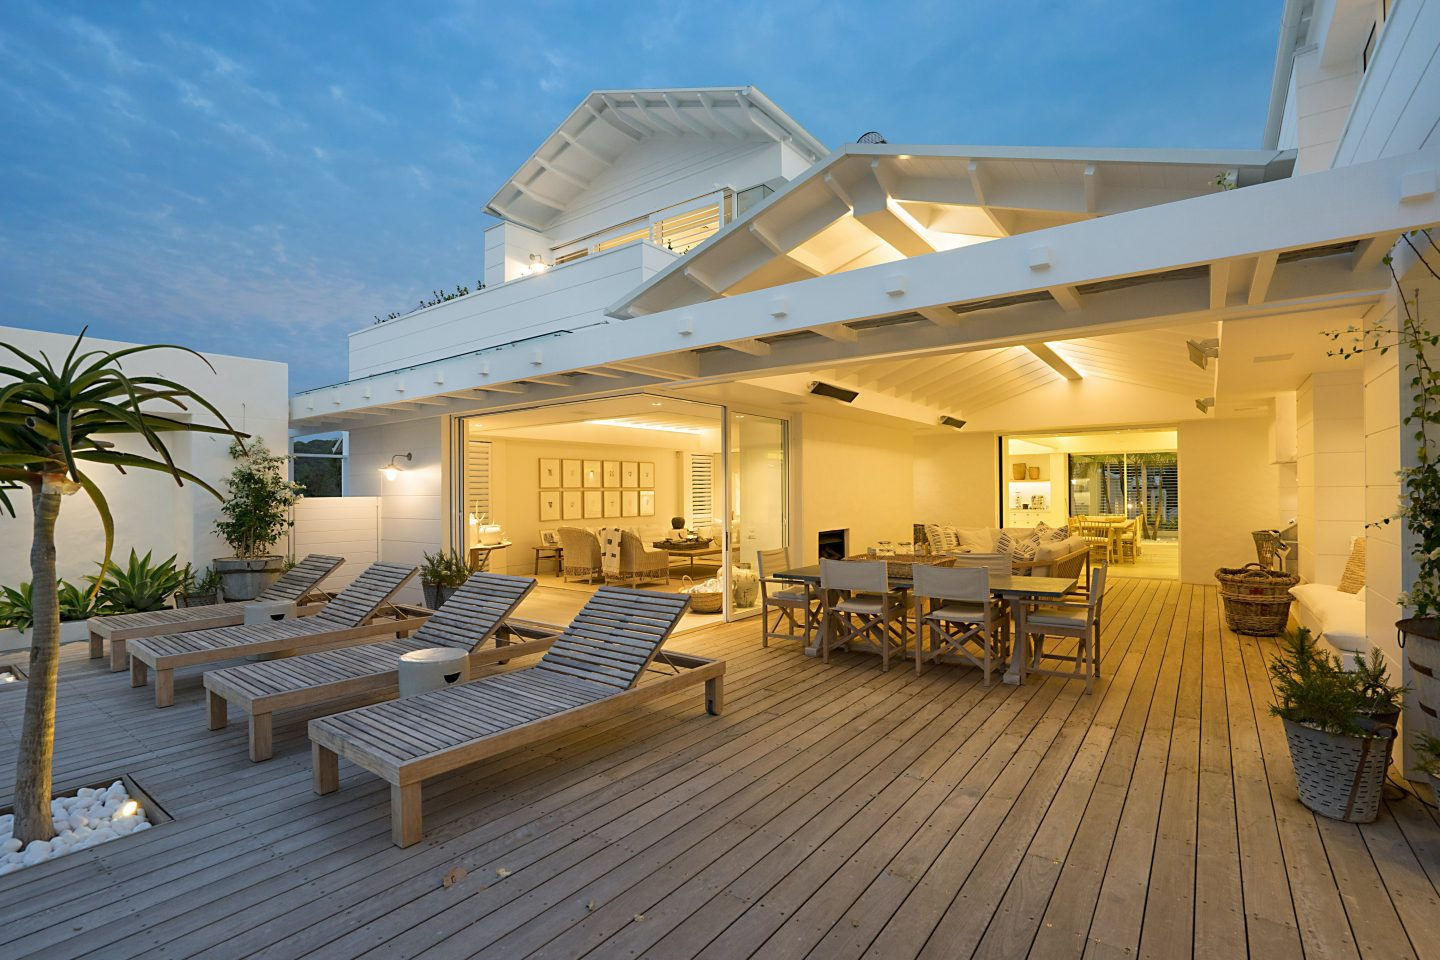 house with large wood deck